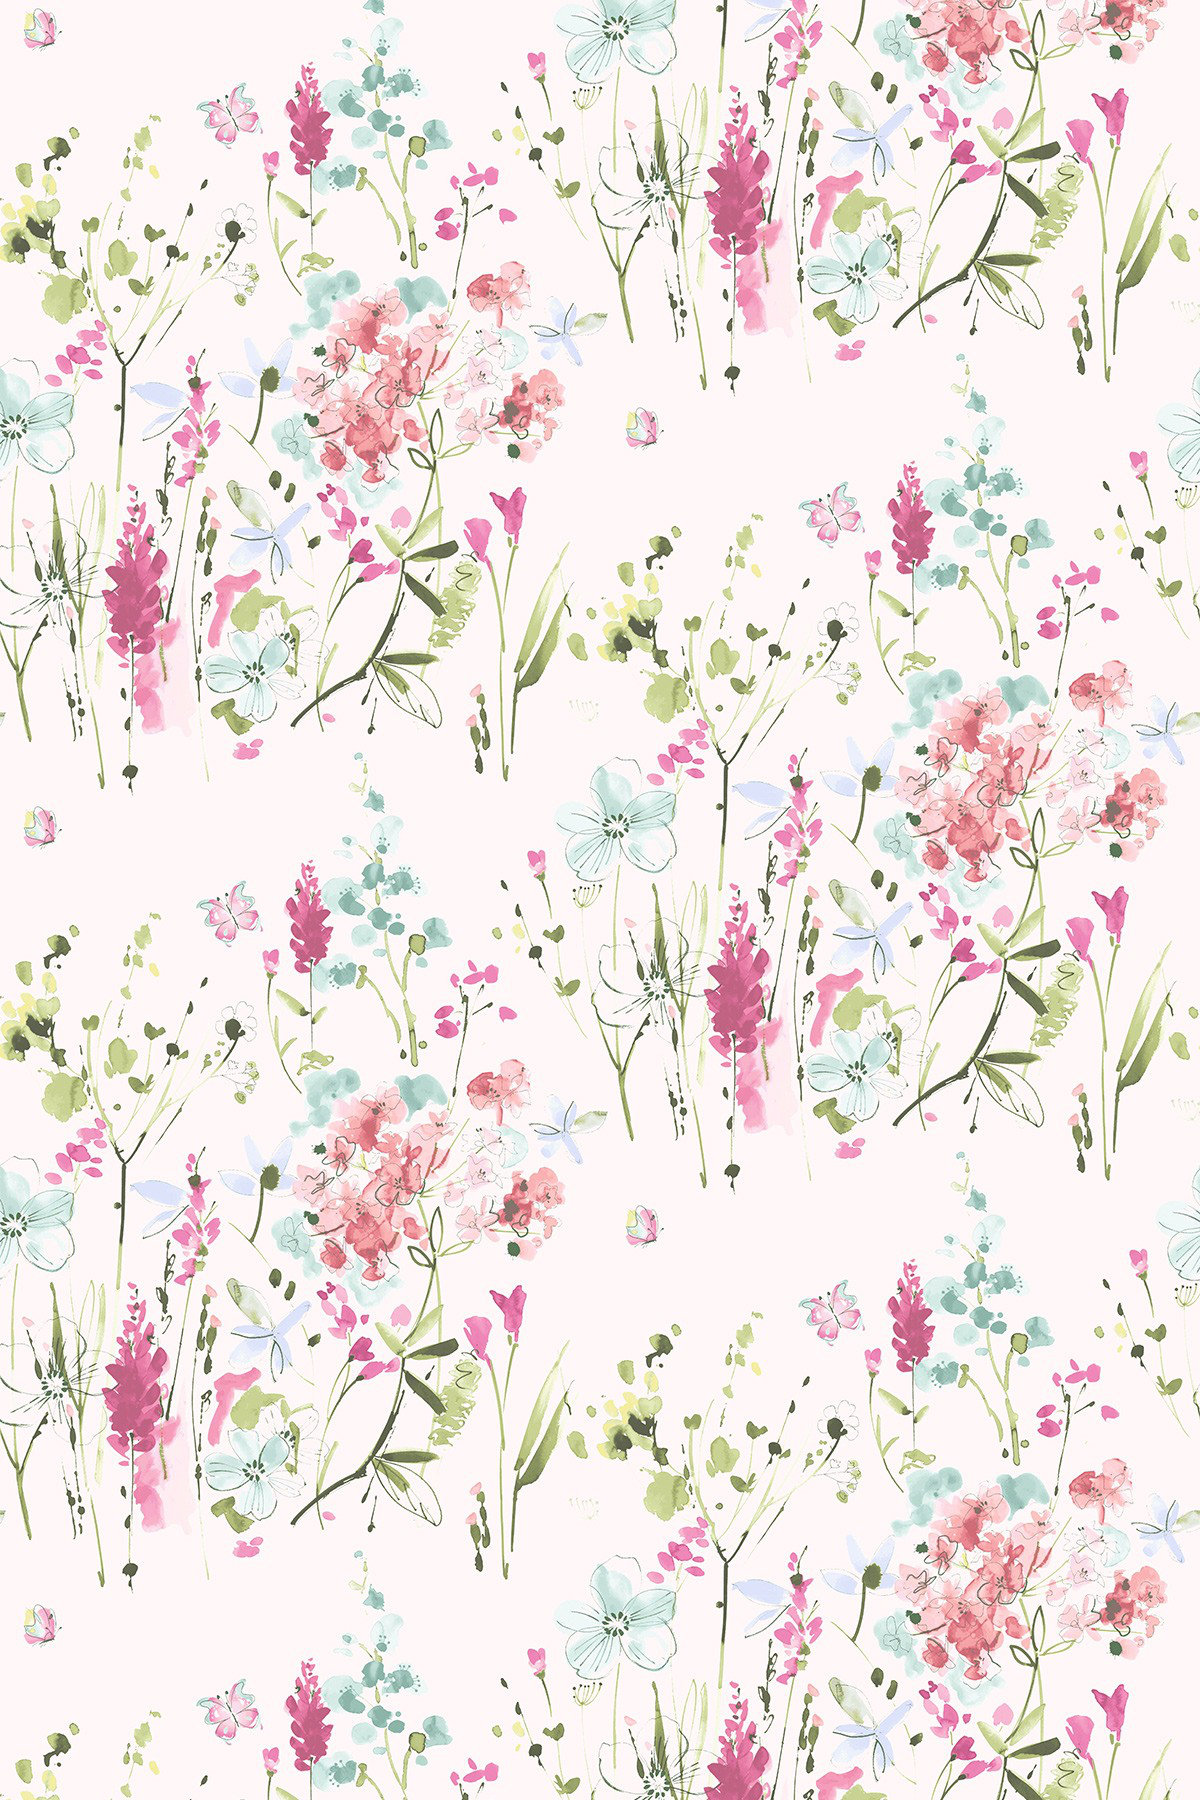 Image of Blendworth Fabric Meadow Flowers, MEADOW FLOWERS 1